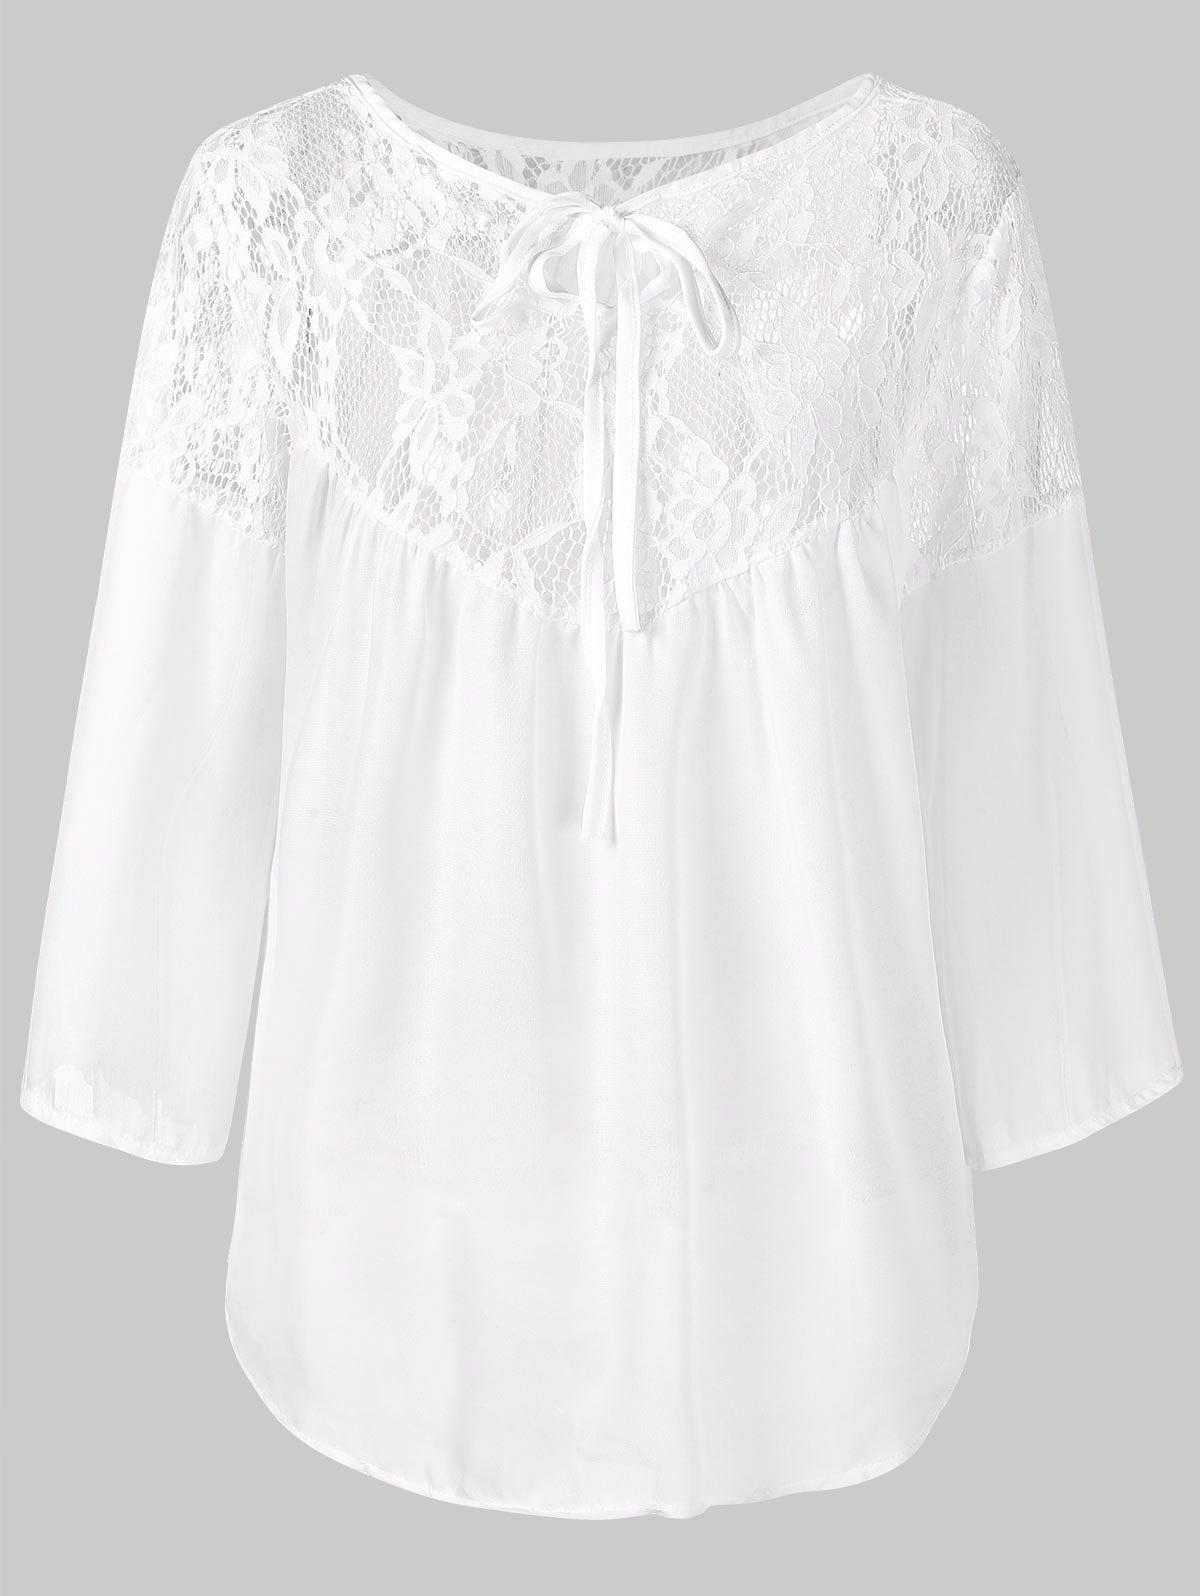 Womens White Dress Shirt Not See Through Chad Crowley Productions